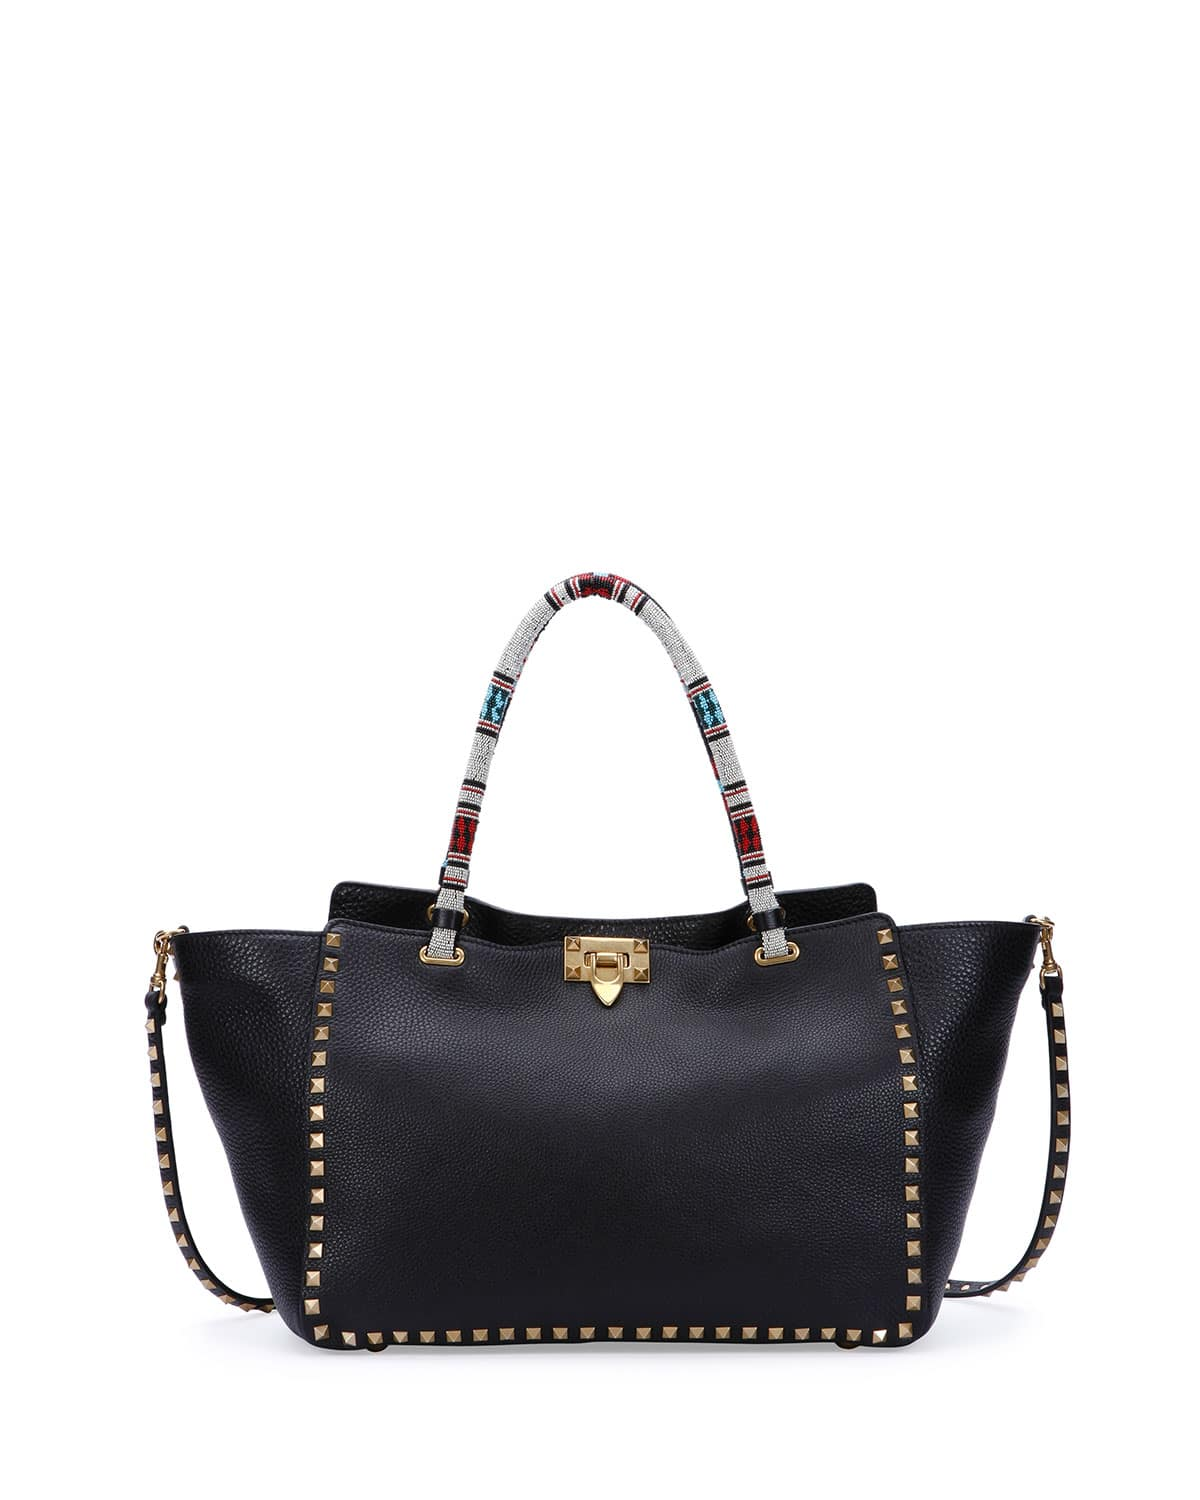 Valentino Bag Price List Reference Guide – Spotted Fashion